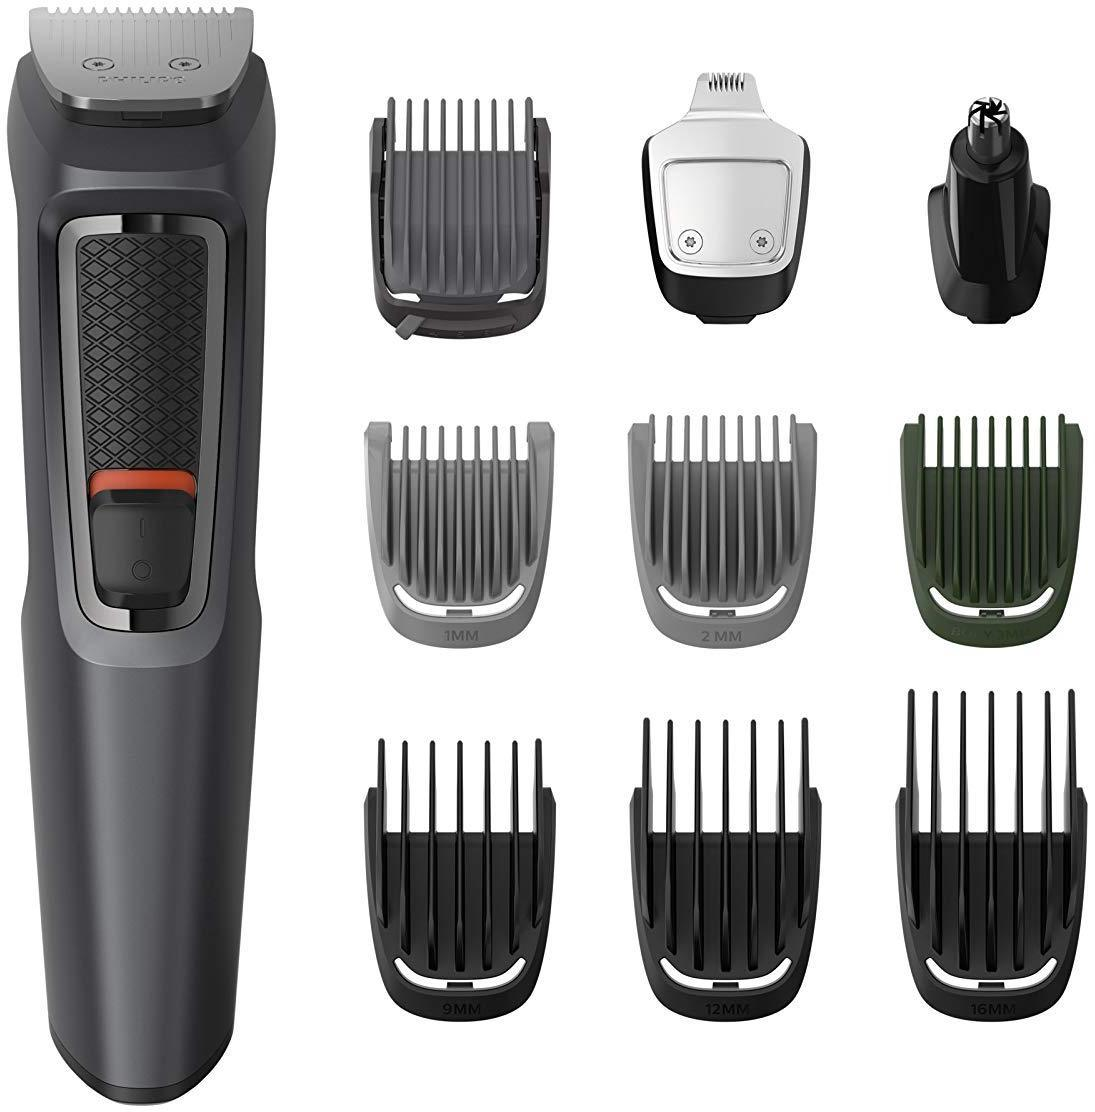 Philips MG3747/33 10 in 1 Face, Hair and Body Grooming Kit